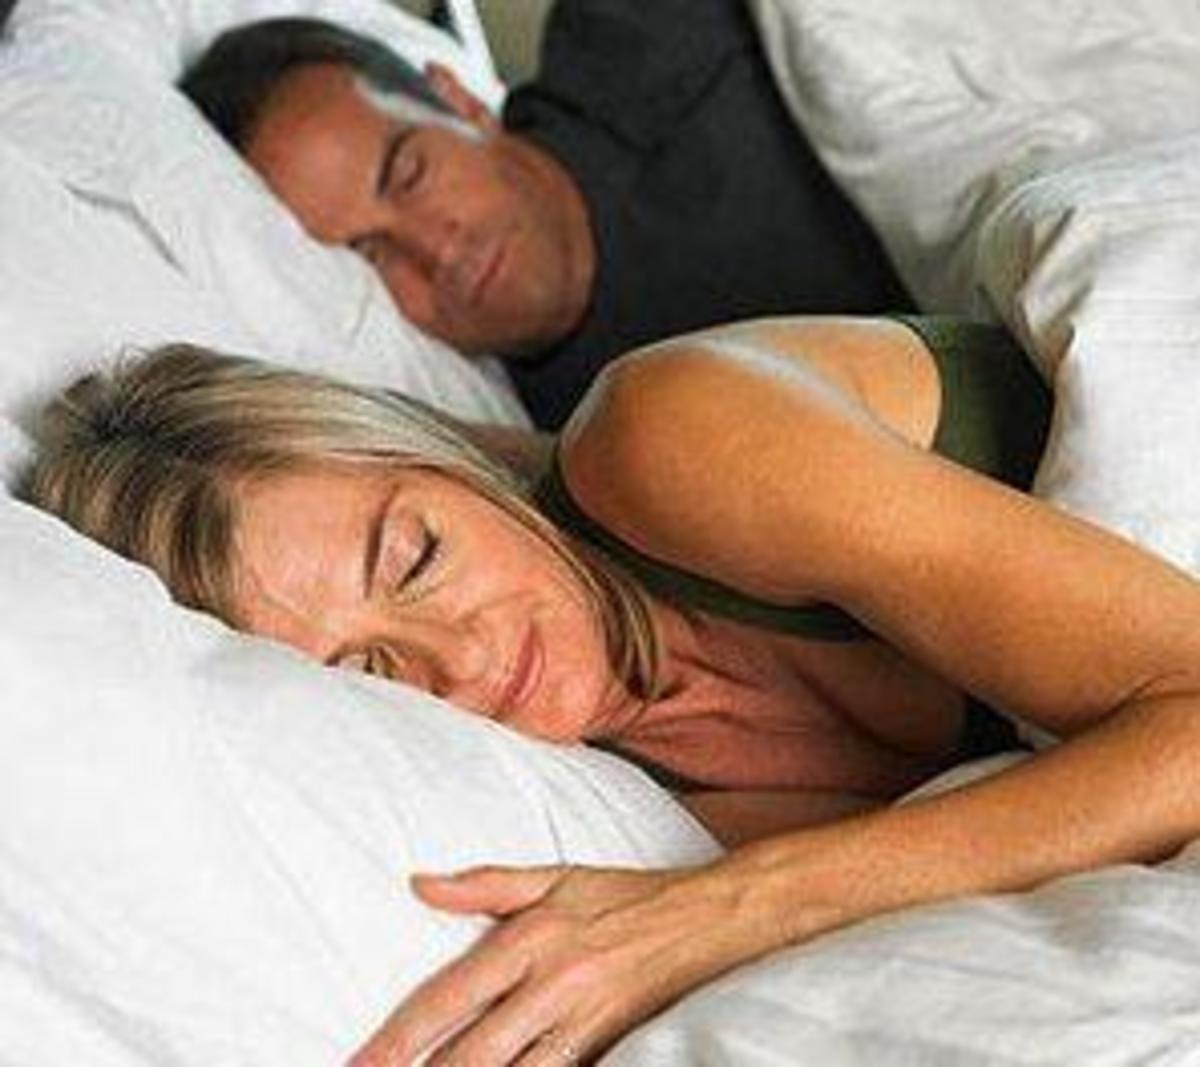 Loss of libido can devastate a loving relationship